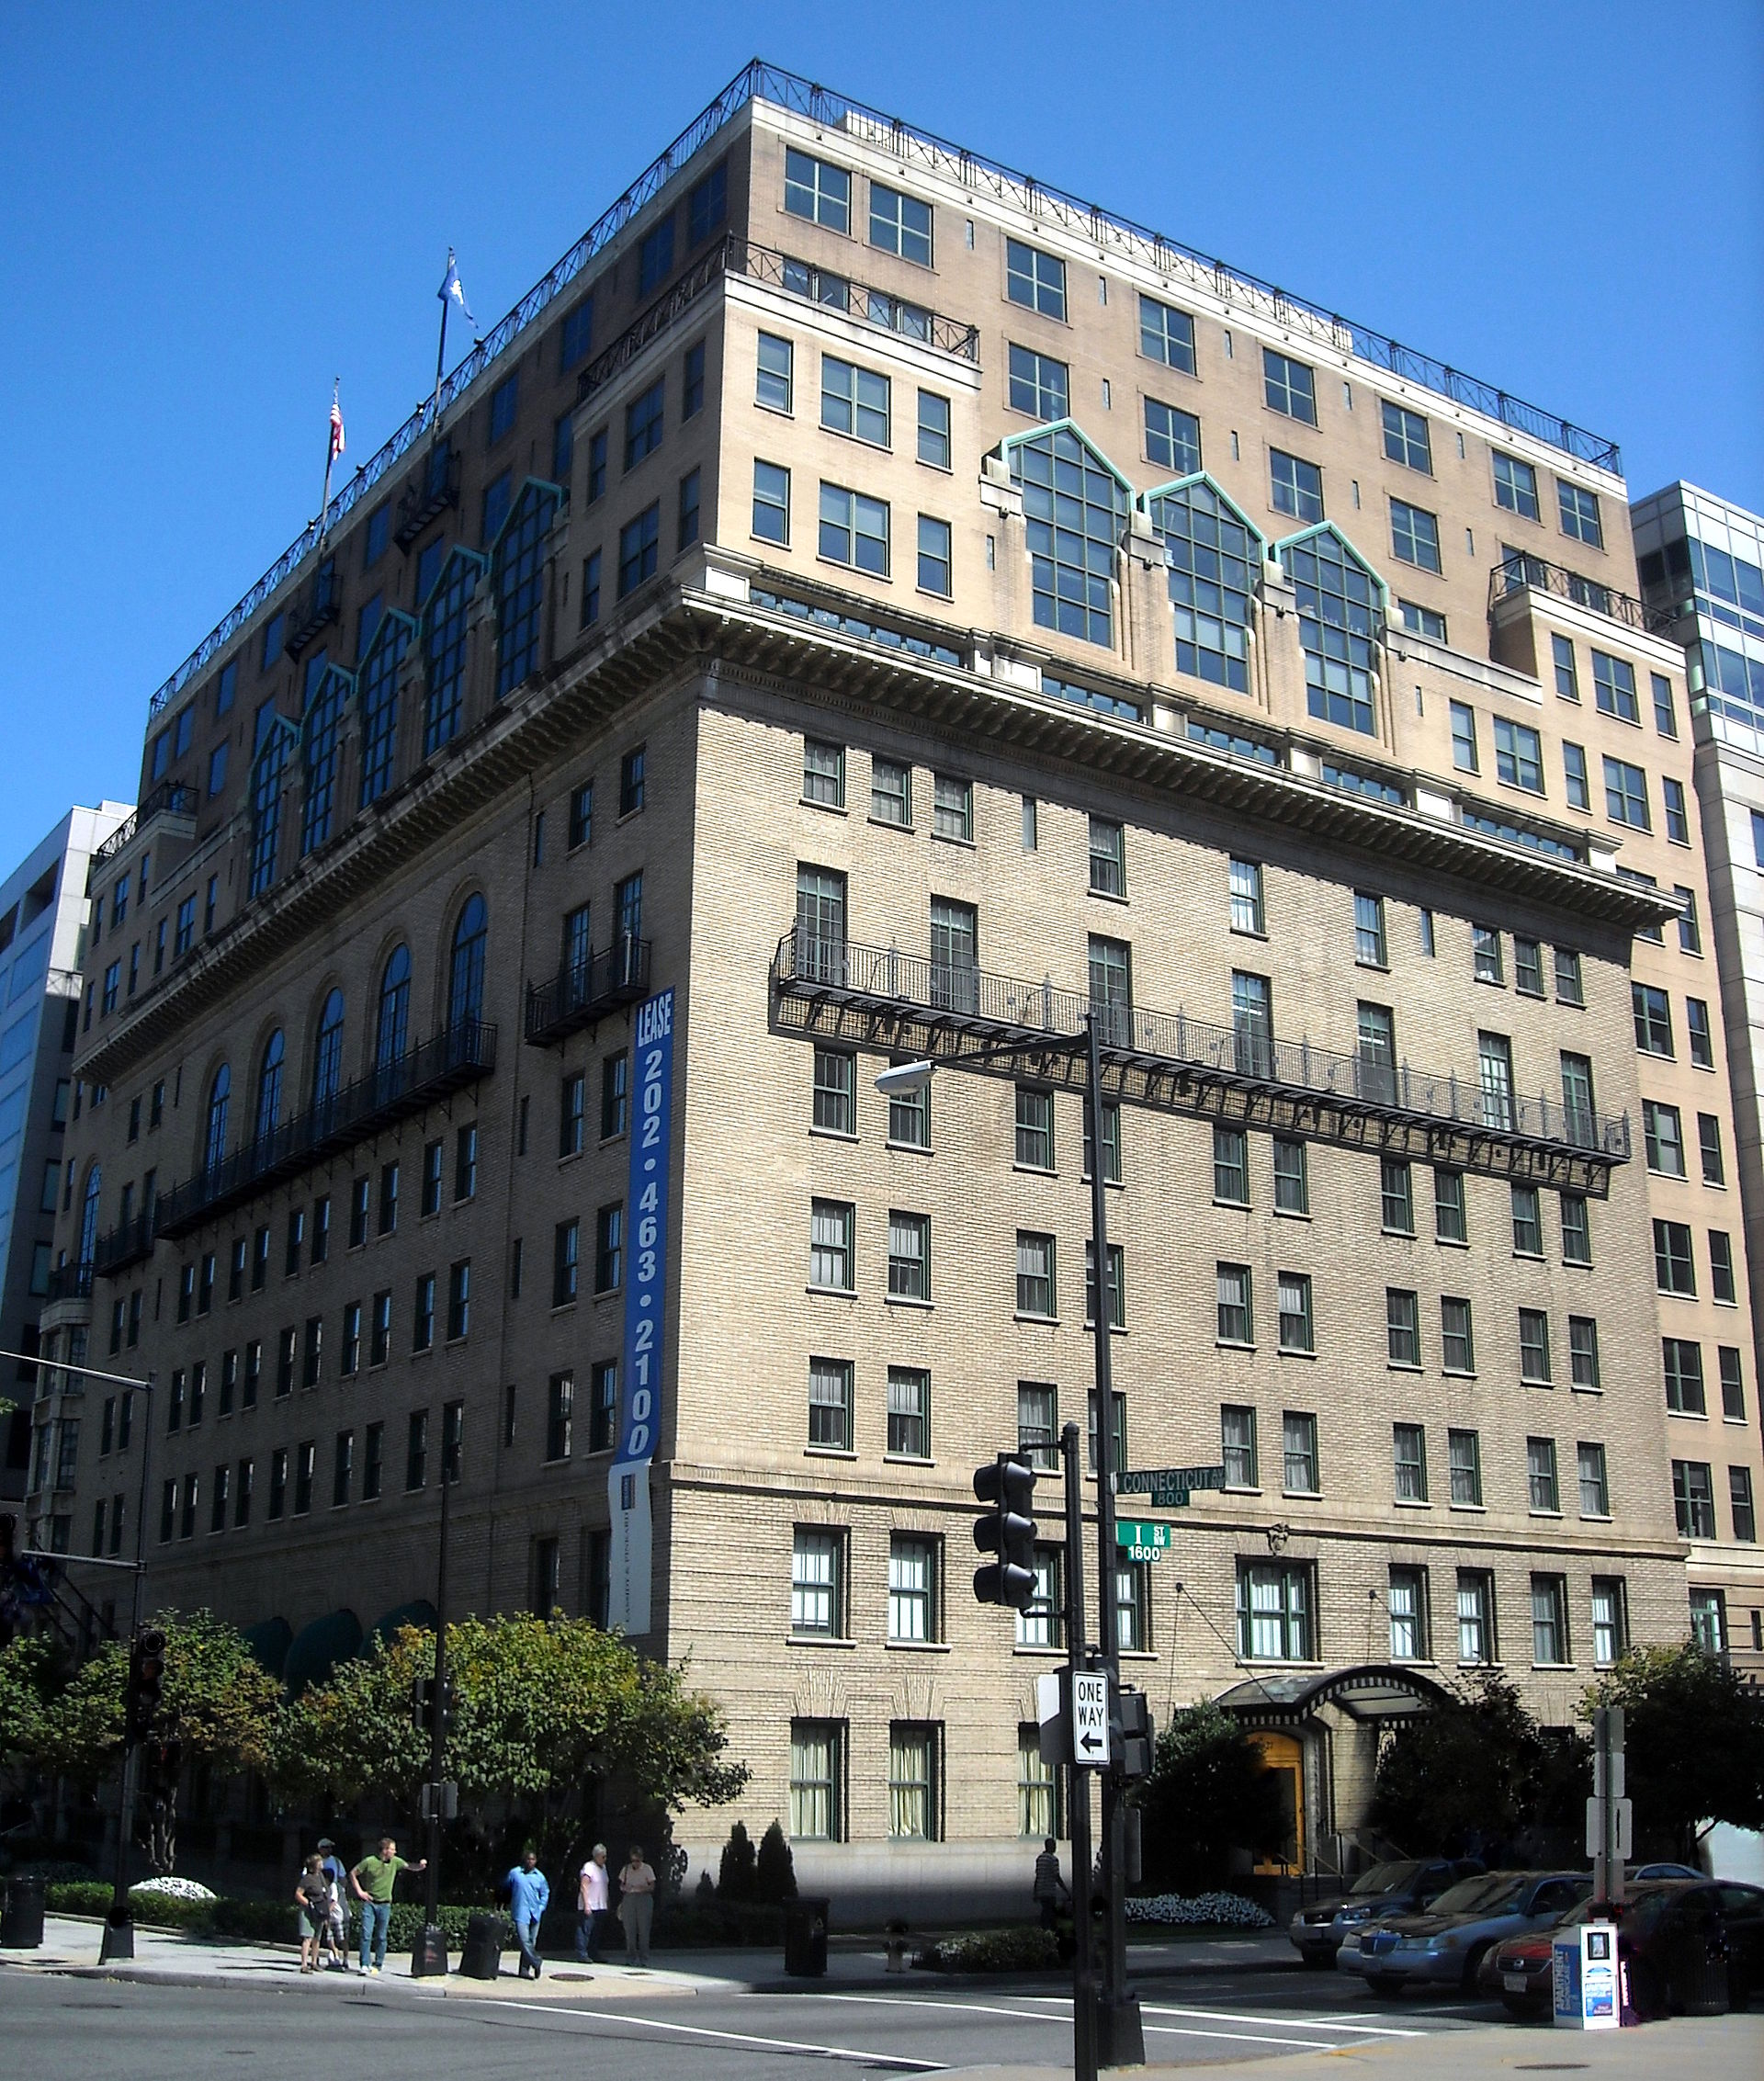 Army And Navy Club Building Wikipedia